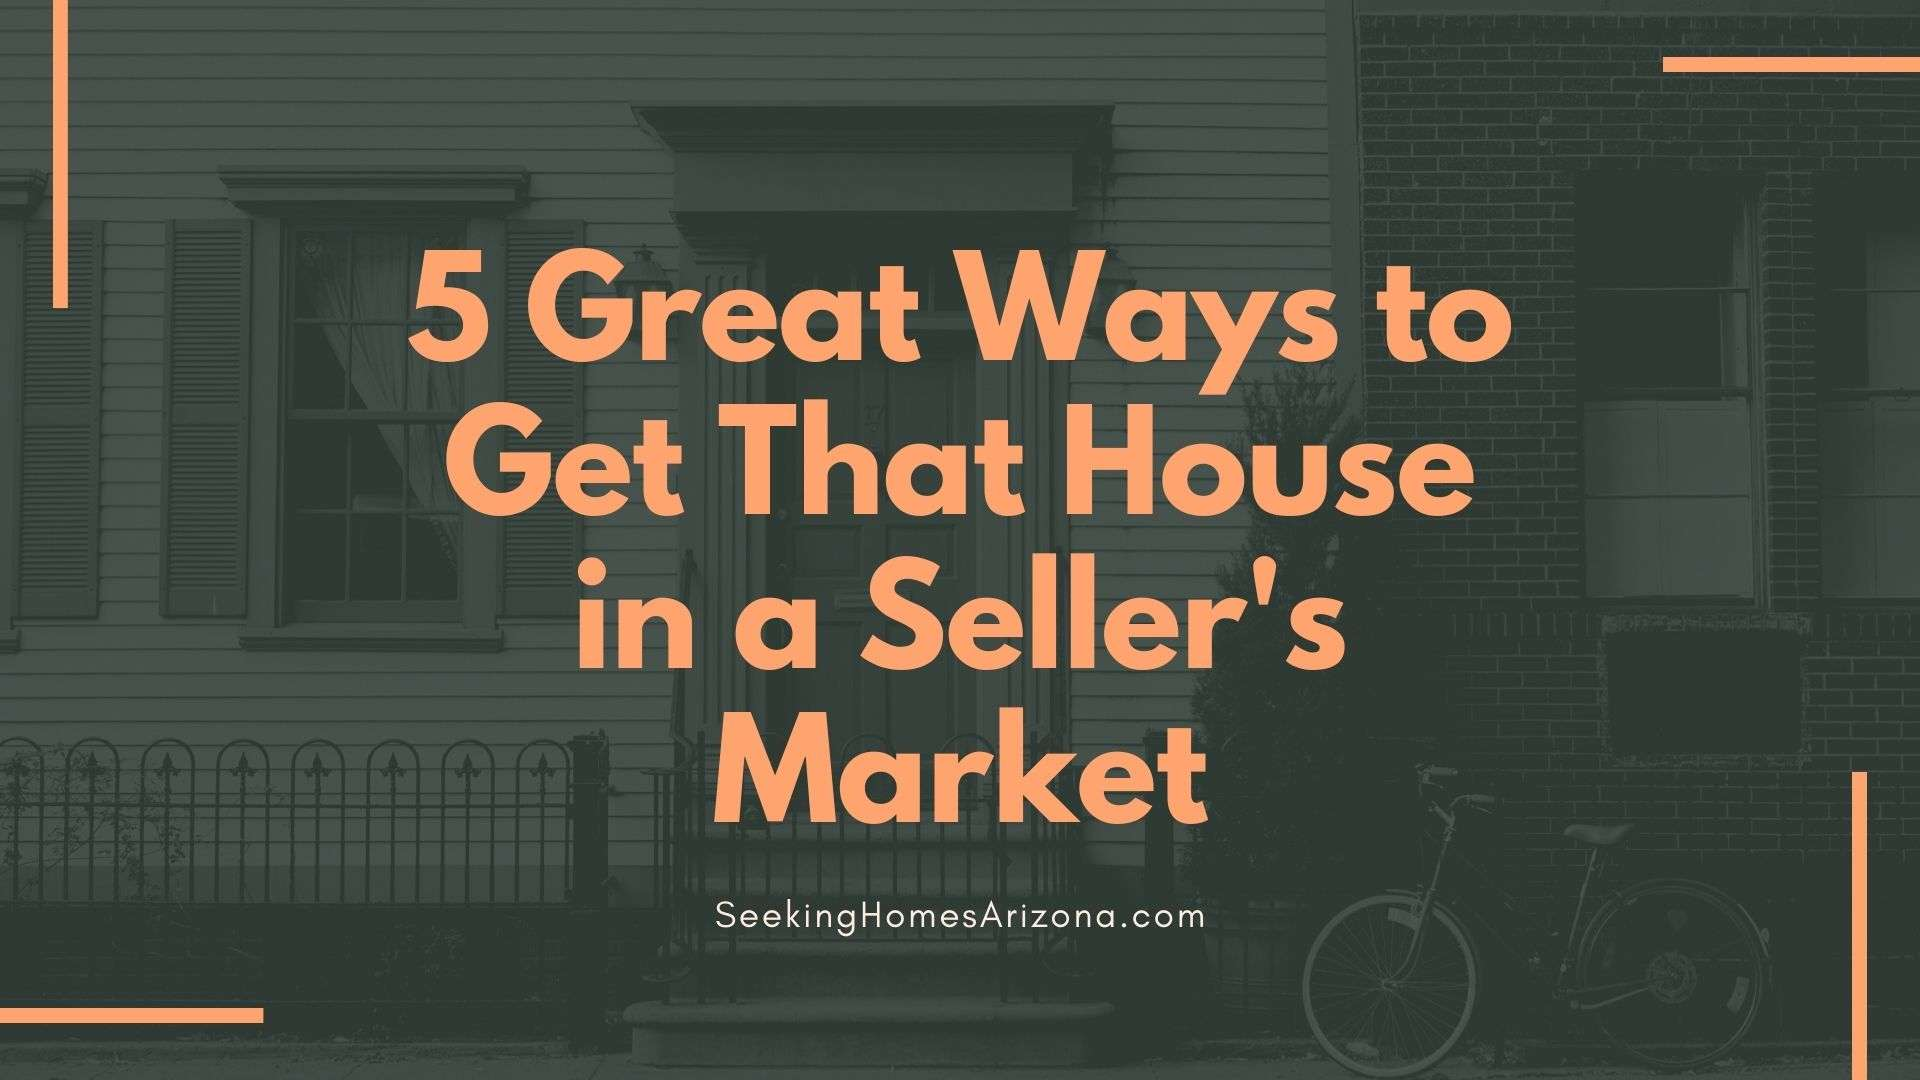 5 Great Ways to Get That House in a Seller's Market